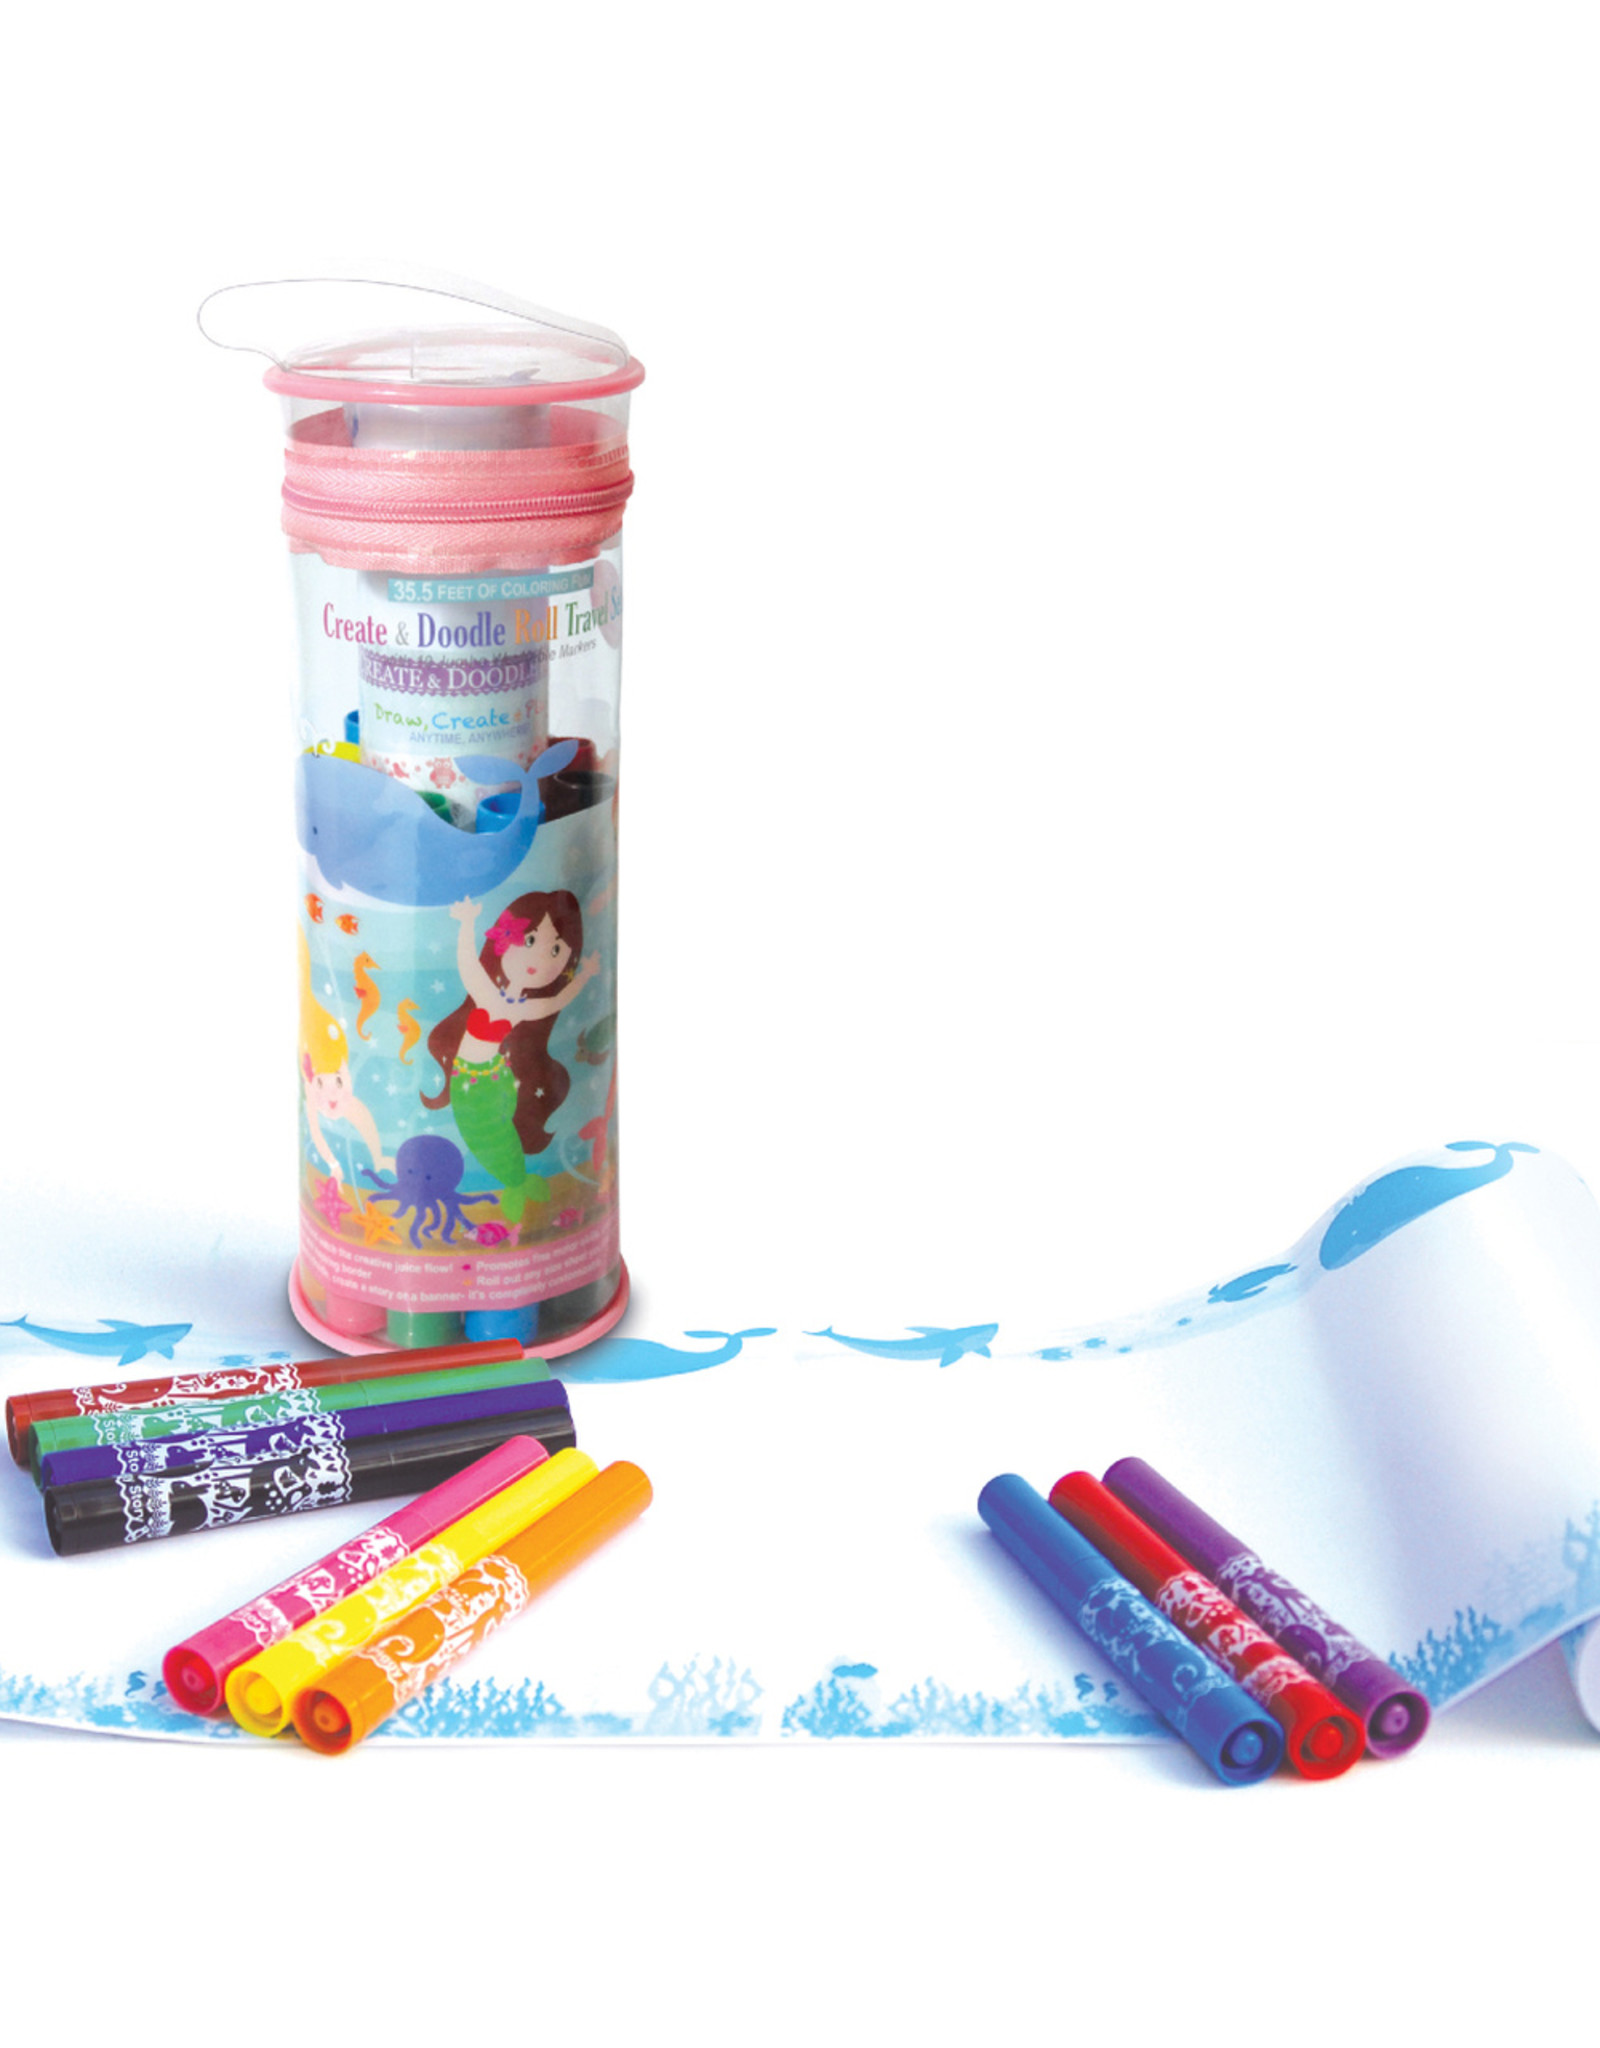 The Piggy Story Inc. Create & Doodle Roll Travel Set